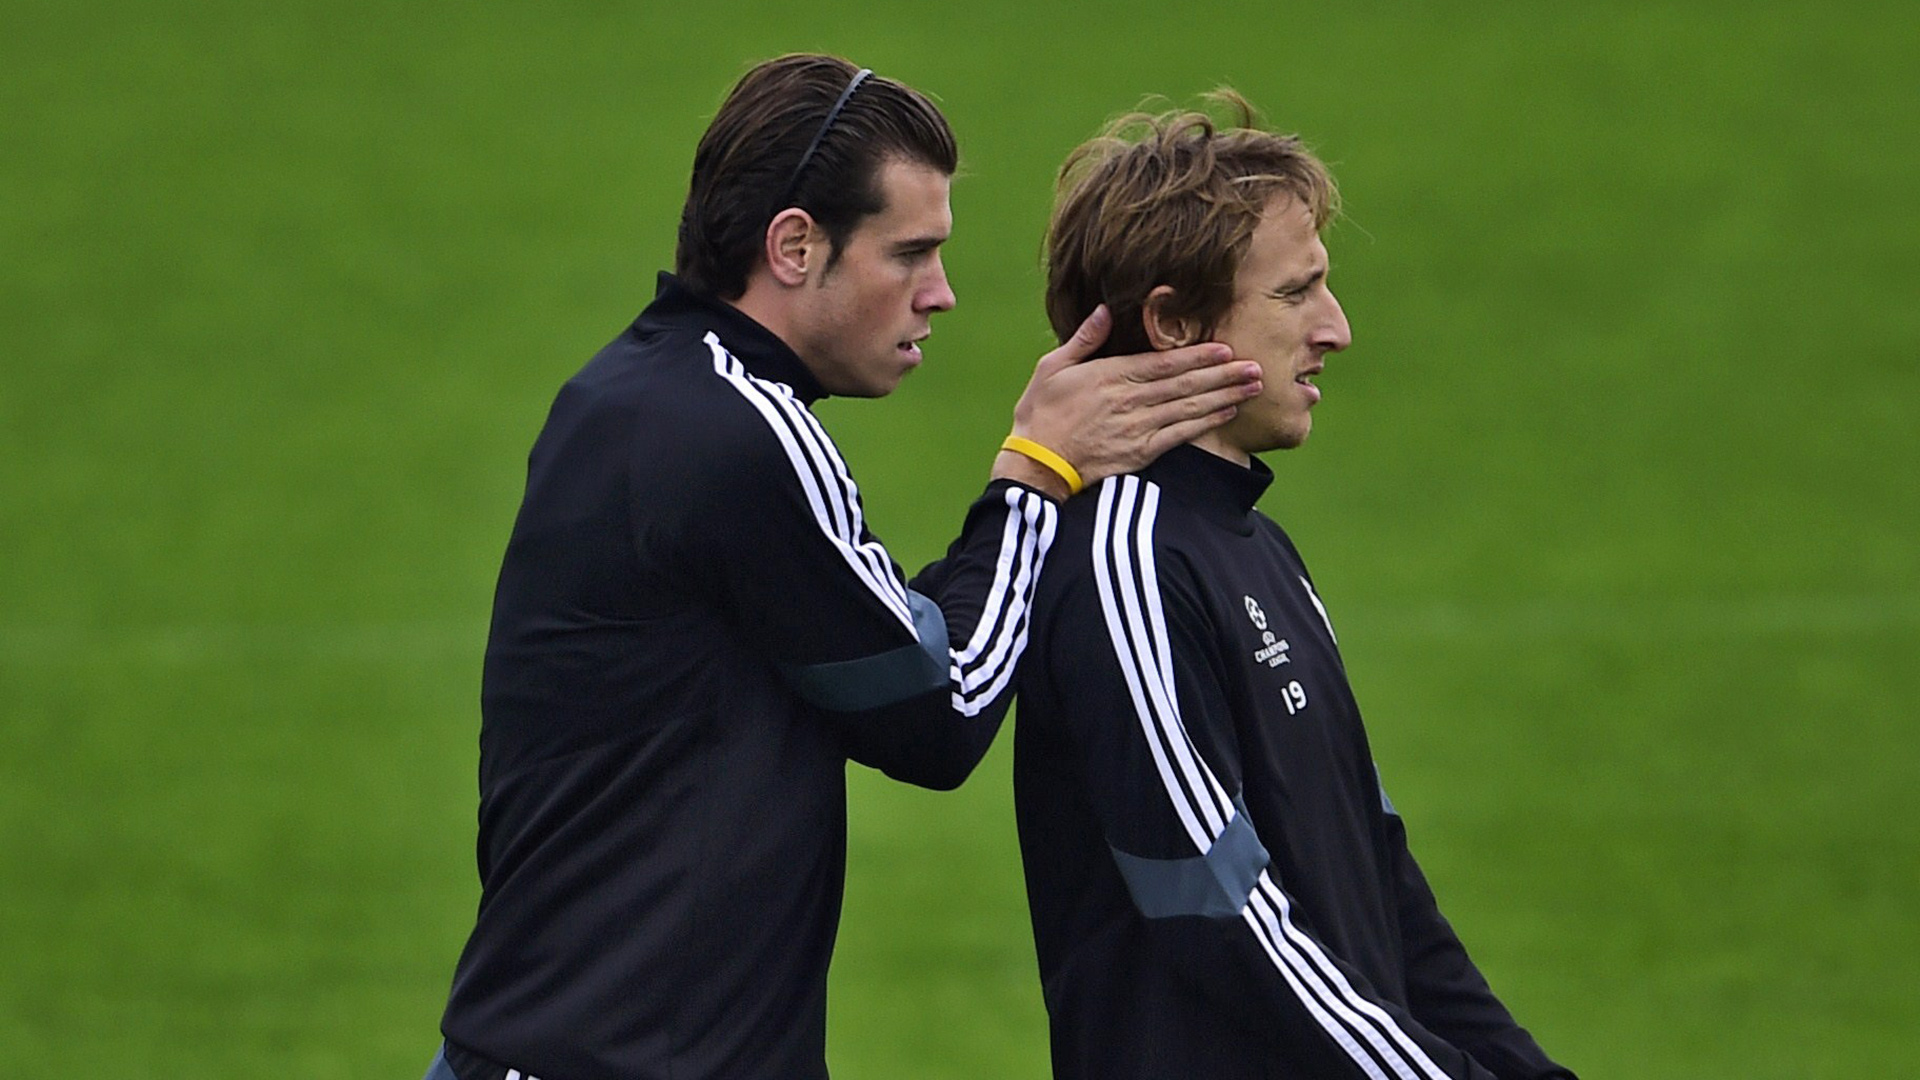 Gareth Bale Luka Modric Real Madrid Champions League training 03112014